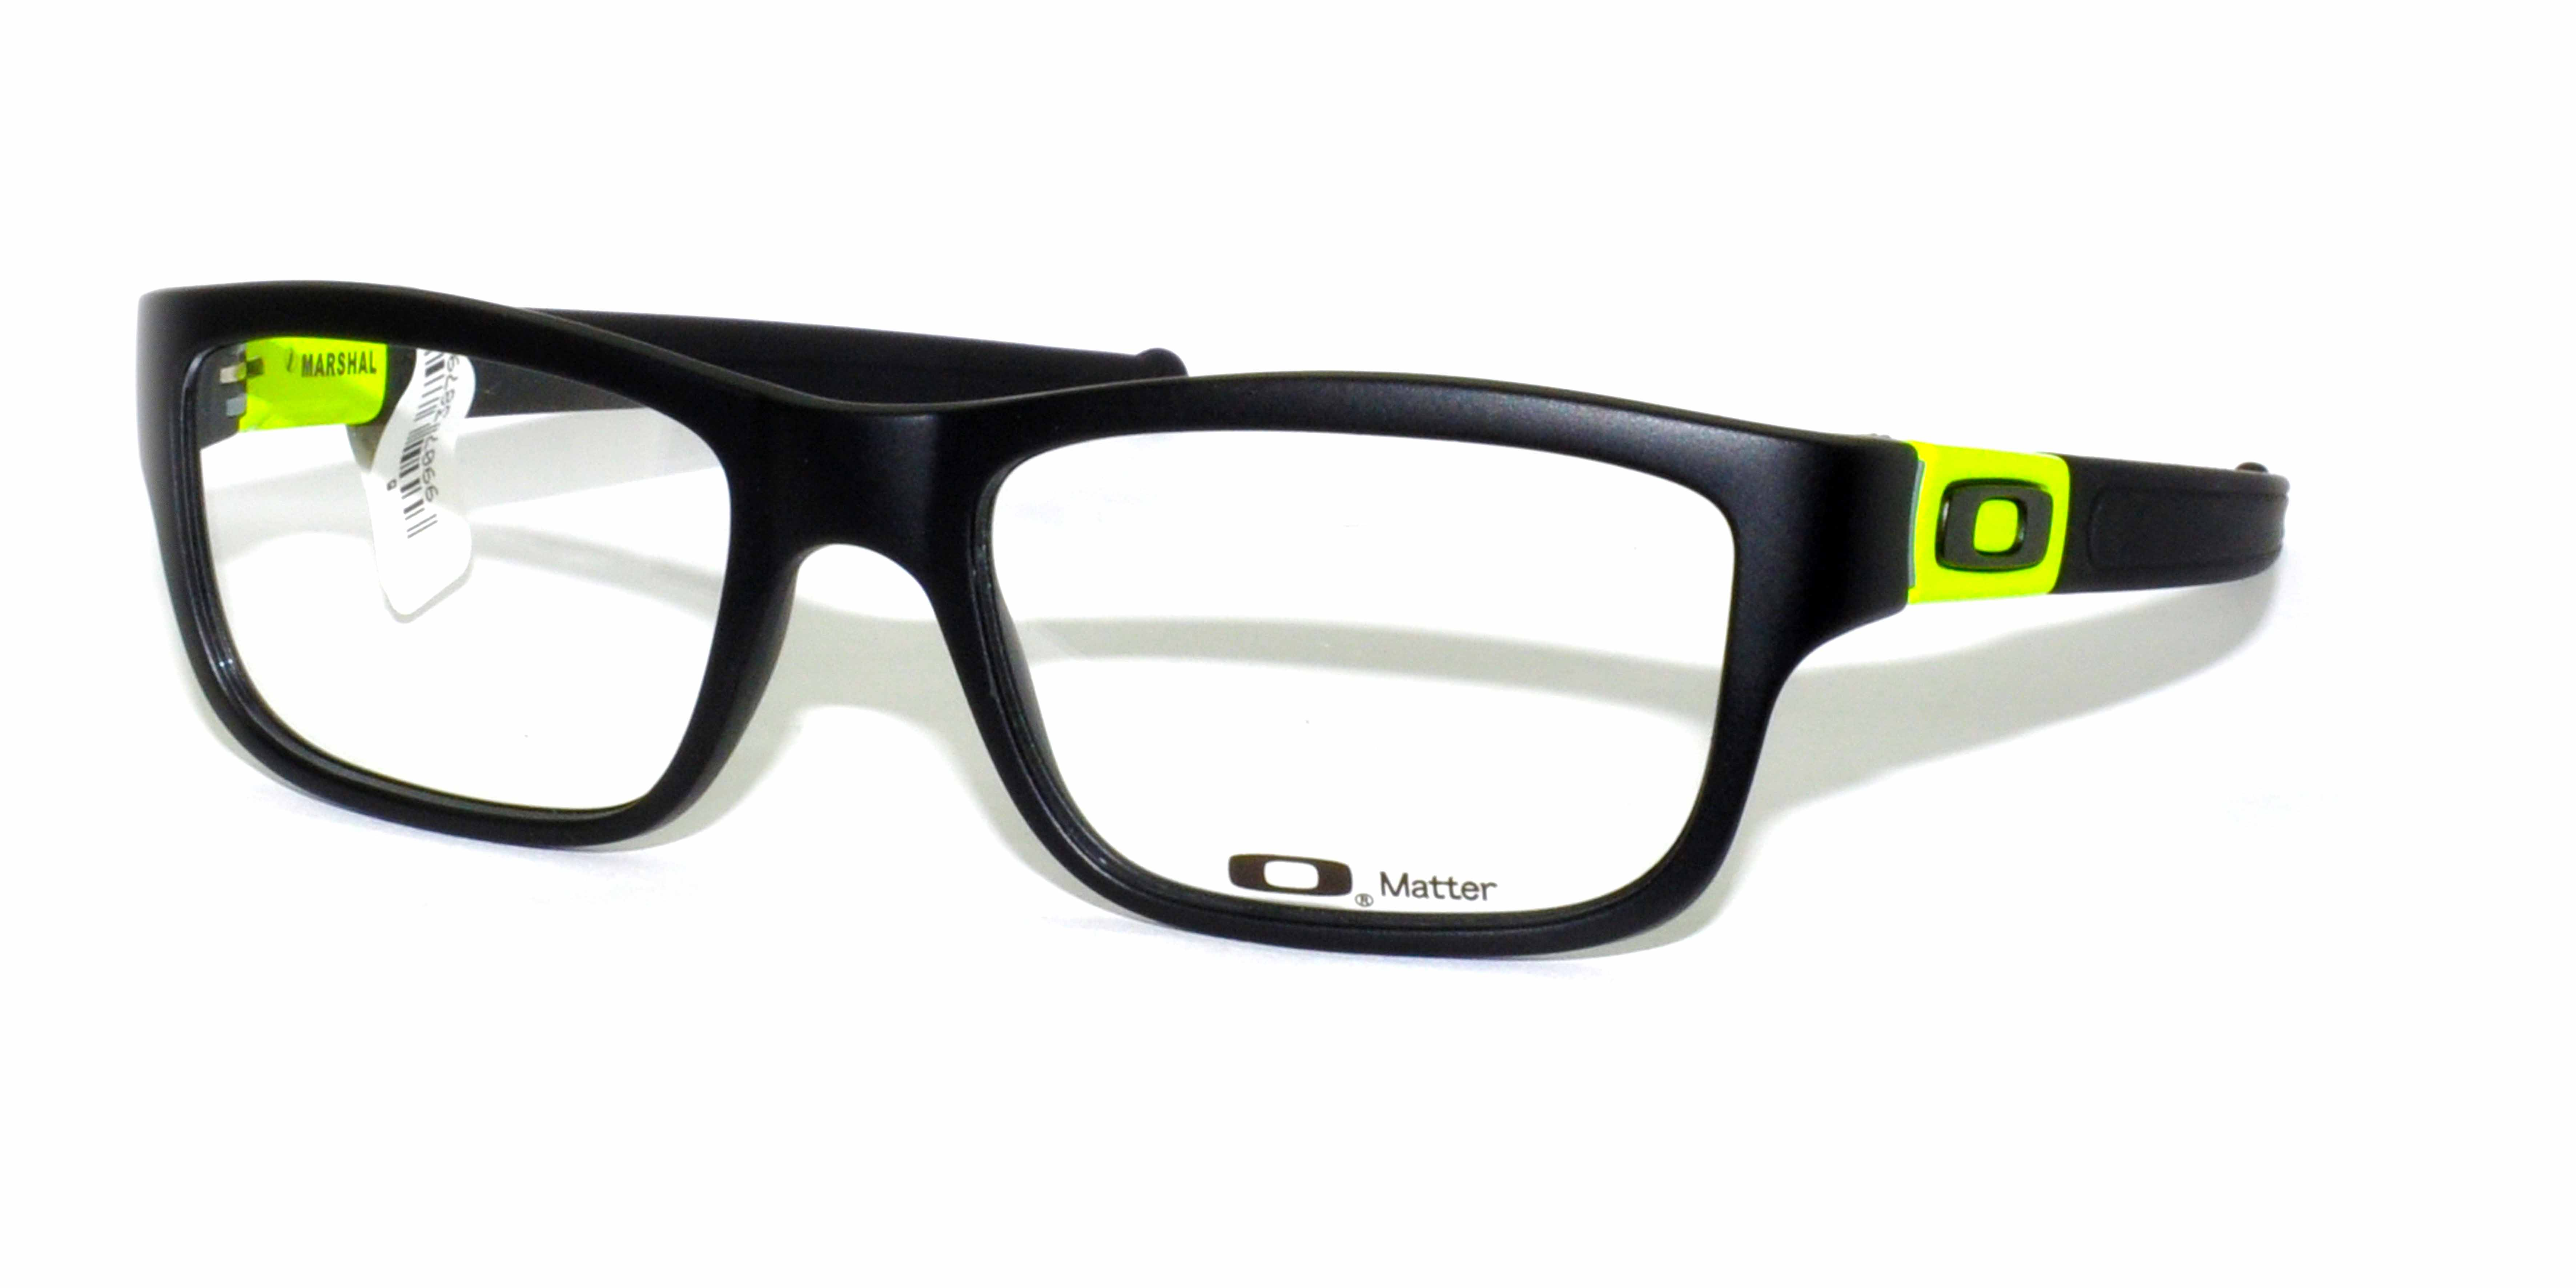 oakley model marshall 8034 colour code 05 frame colour satin black